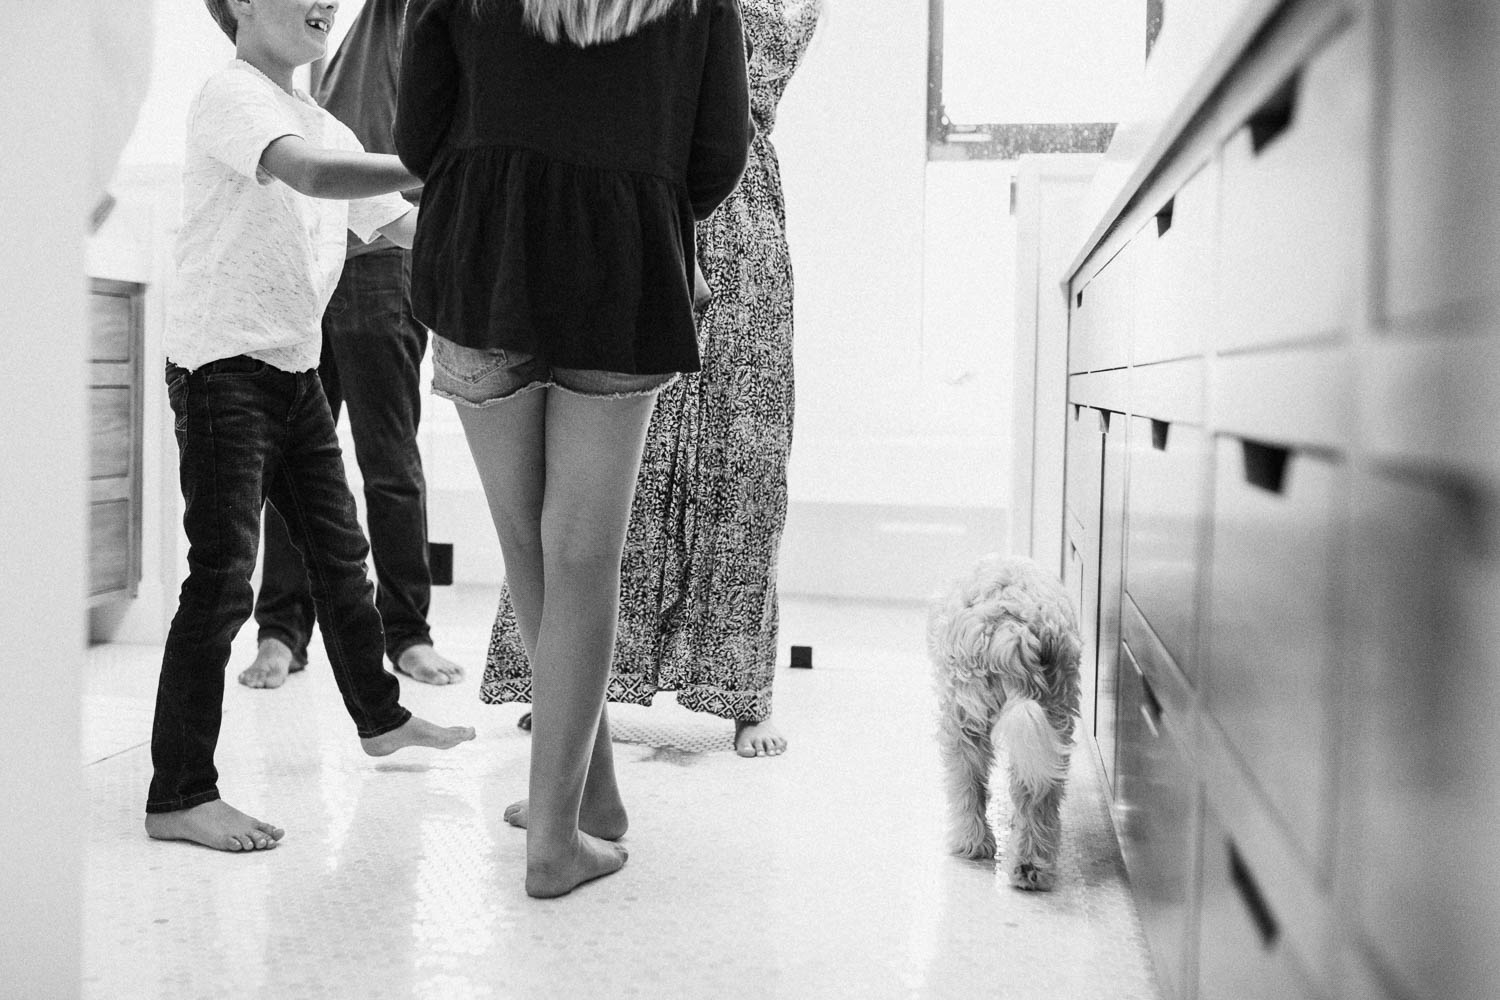 candid-and-artistic-photo-in-bathroom-of-families-legs-and-dog-encinita-ca